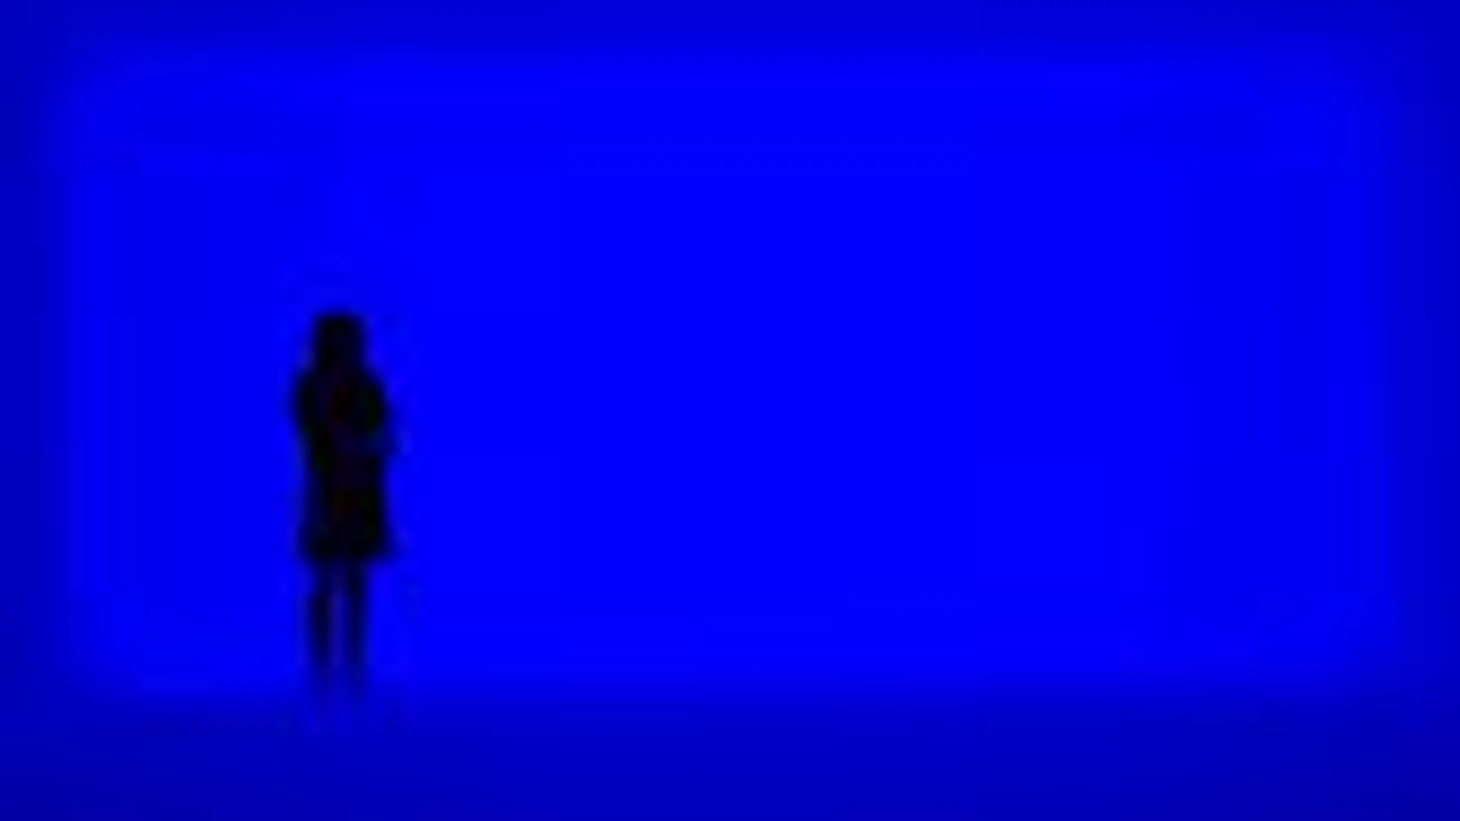 Can light be form or mass? We look at the art and architecture of light, with artist James Turrell and others. Plus, Hippy Modern Californian design, and a preservationist talks about falling in love with a building he fought against.